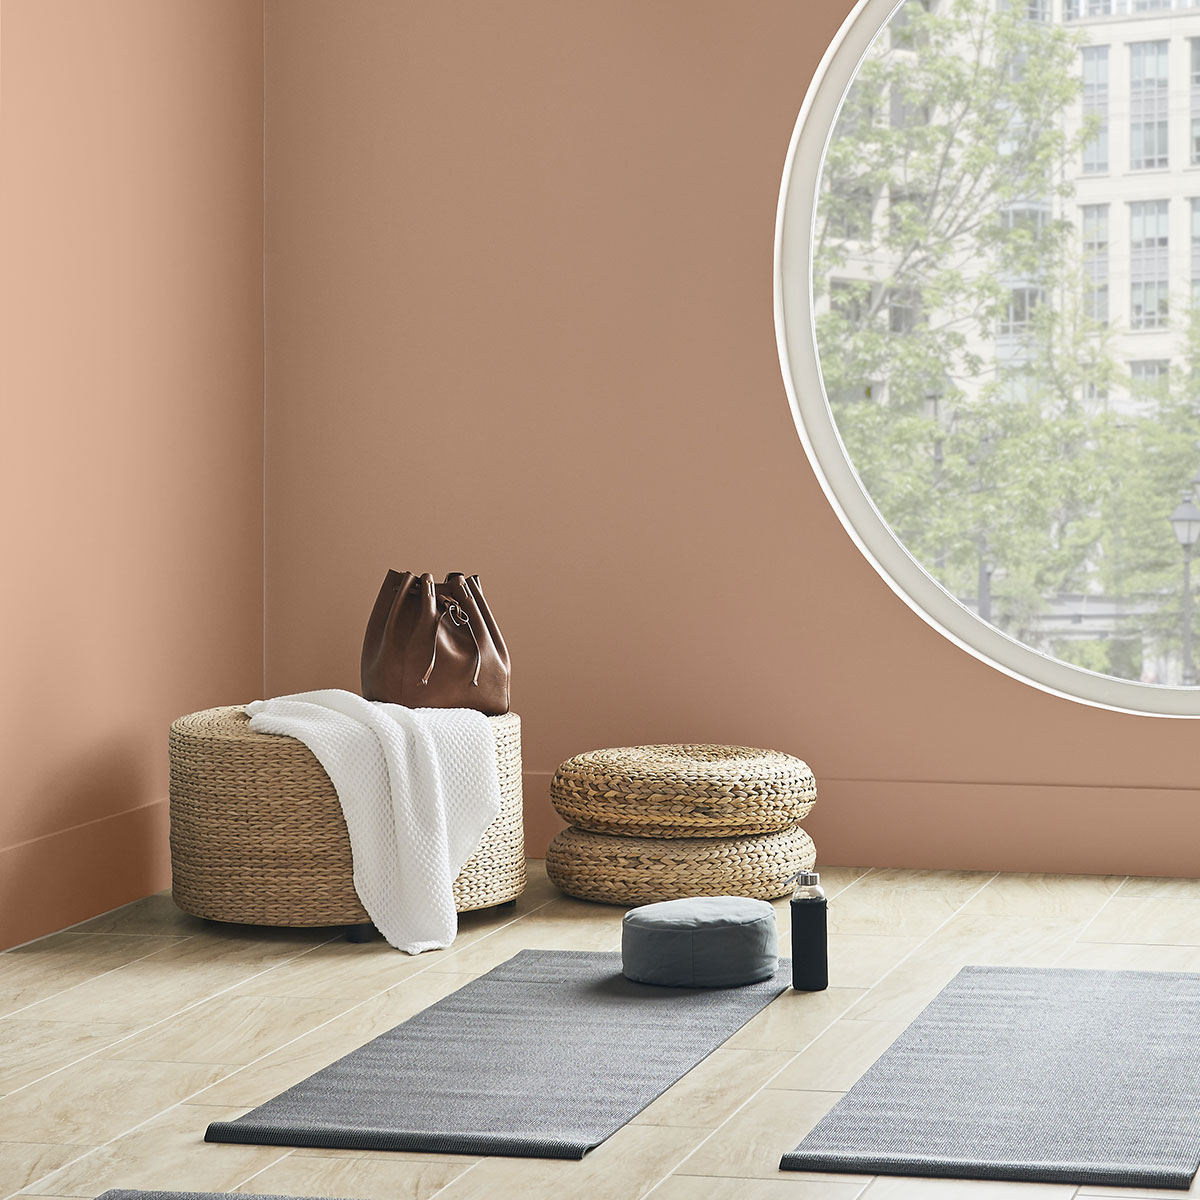 A cropped corner of a workout room with walls painted in Canyon Dusk. There is a large circle window on the wall bringing in a lot of light to the room. A rattan ottoman with a towel and purse placed on top sits in the corner. On the ground are yoga mats.